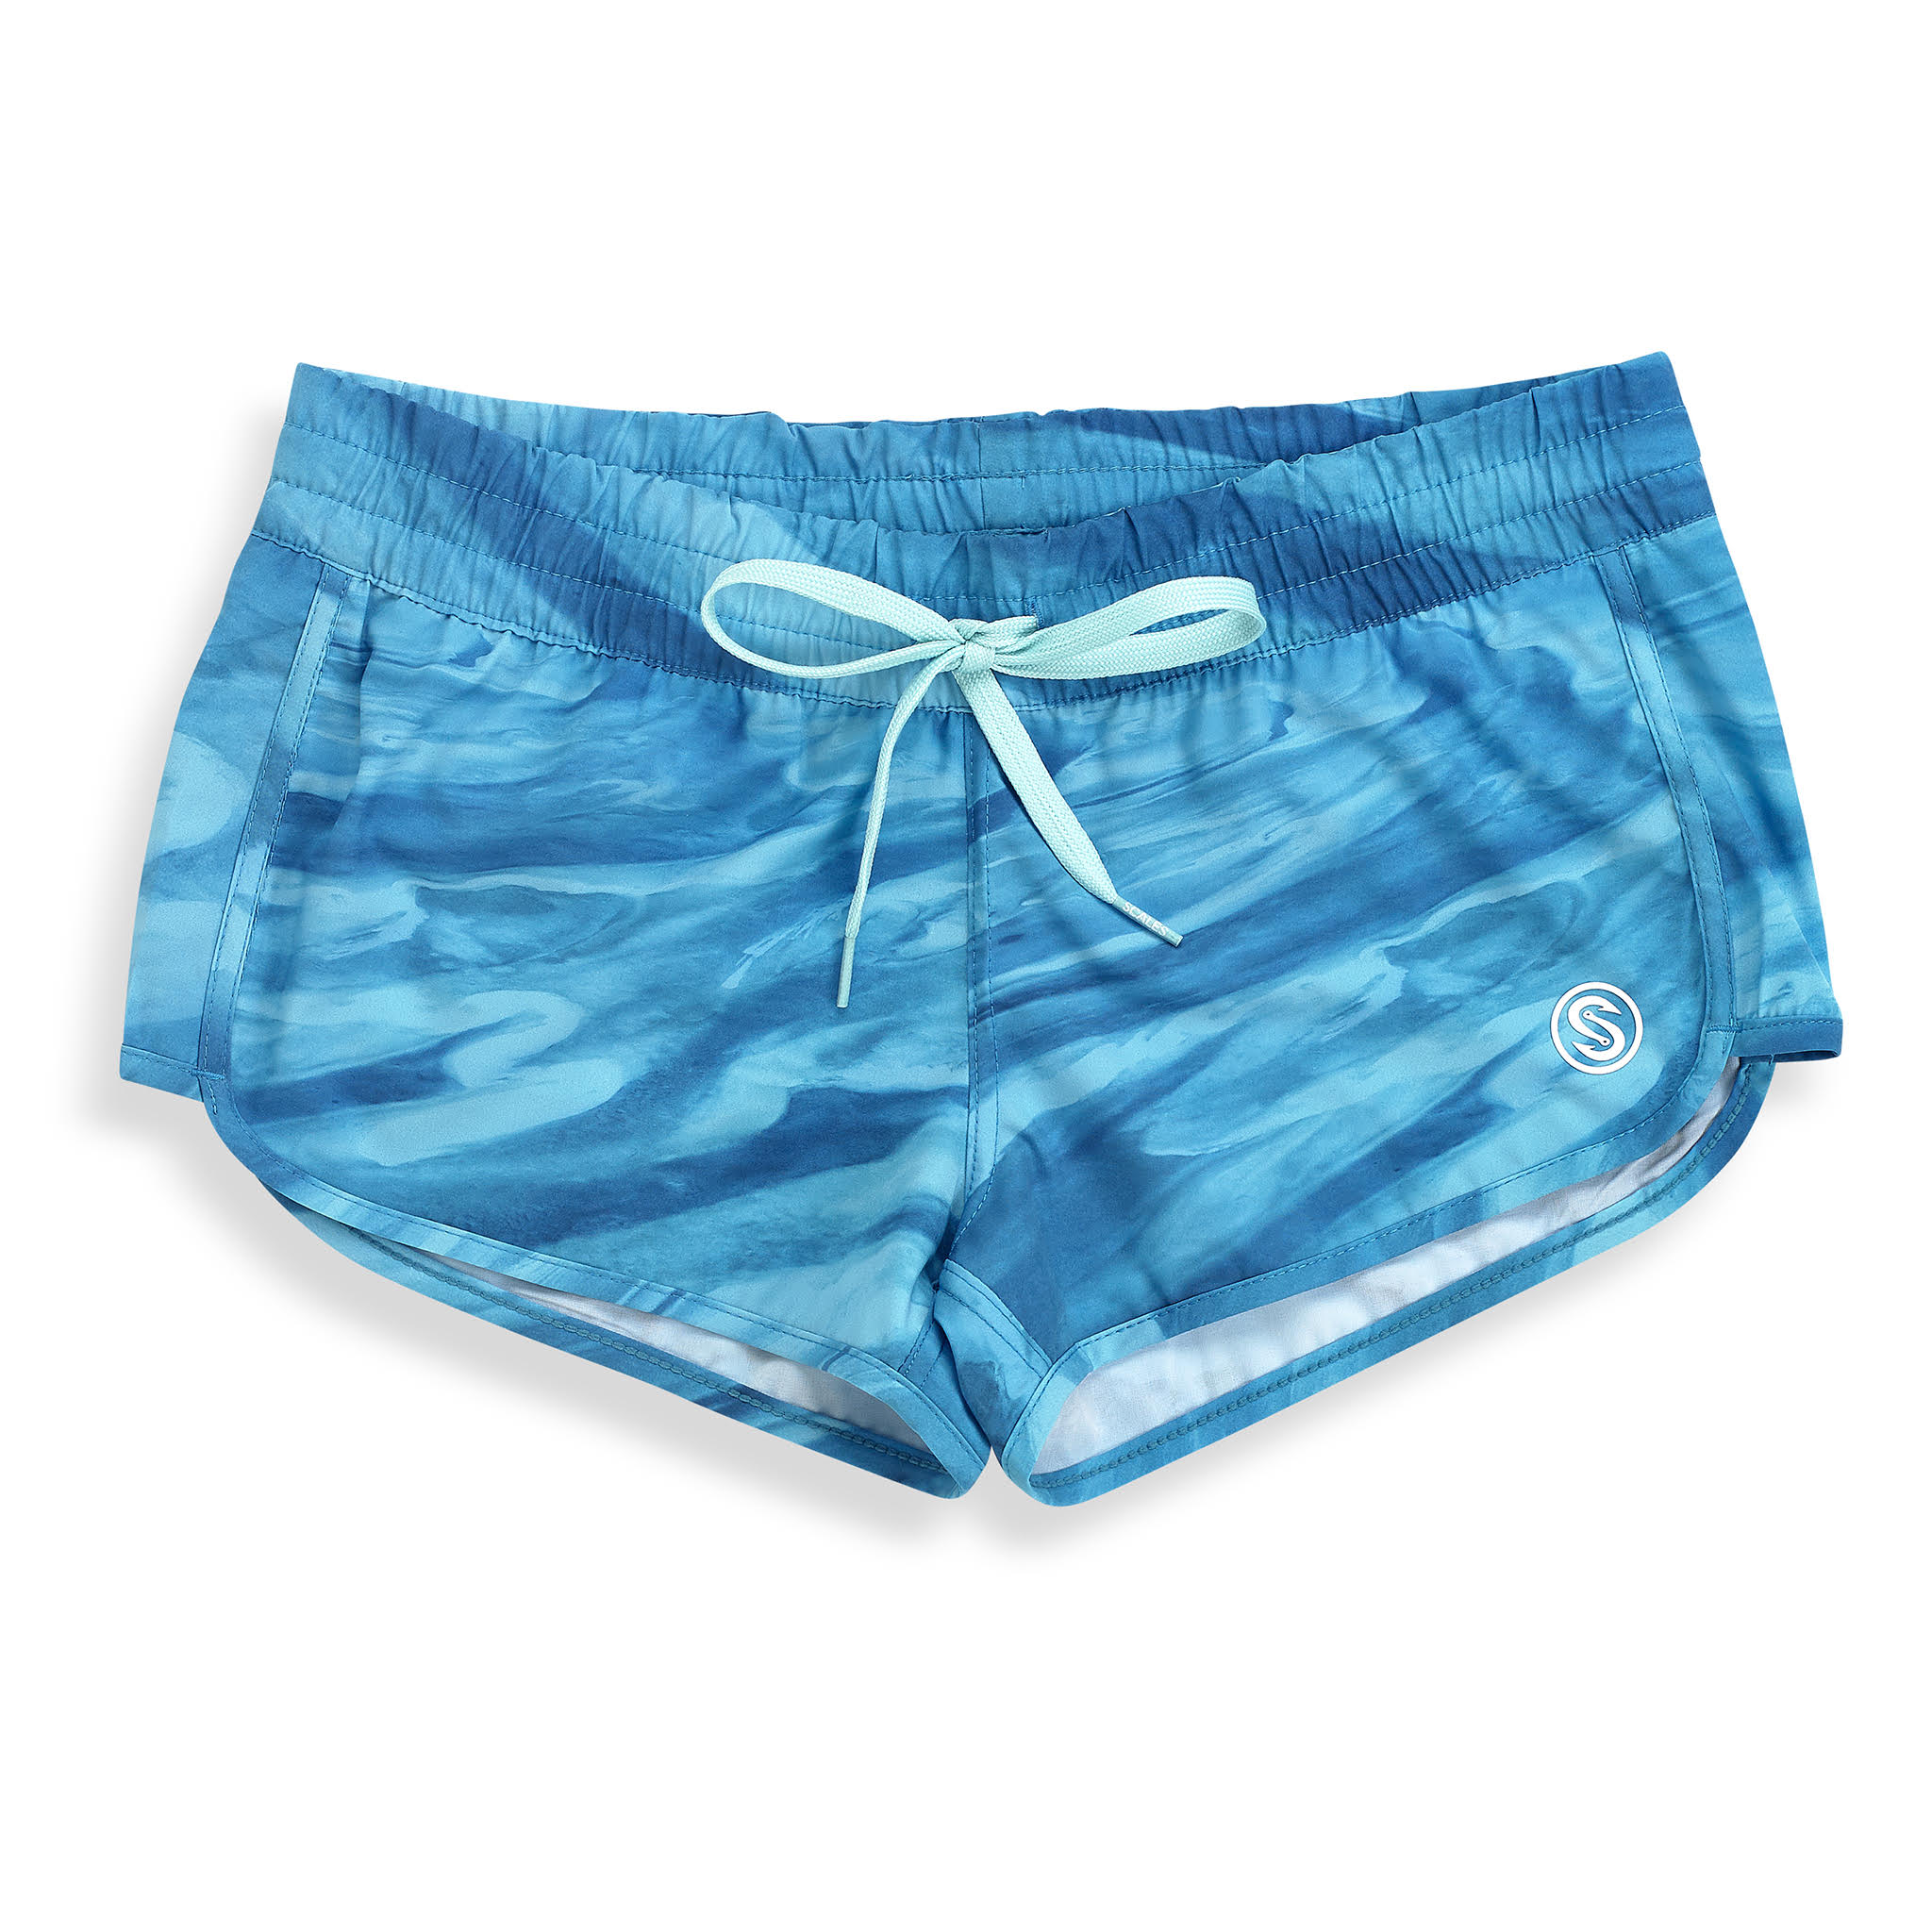 Bahamas Current Womens Boardshorts Front